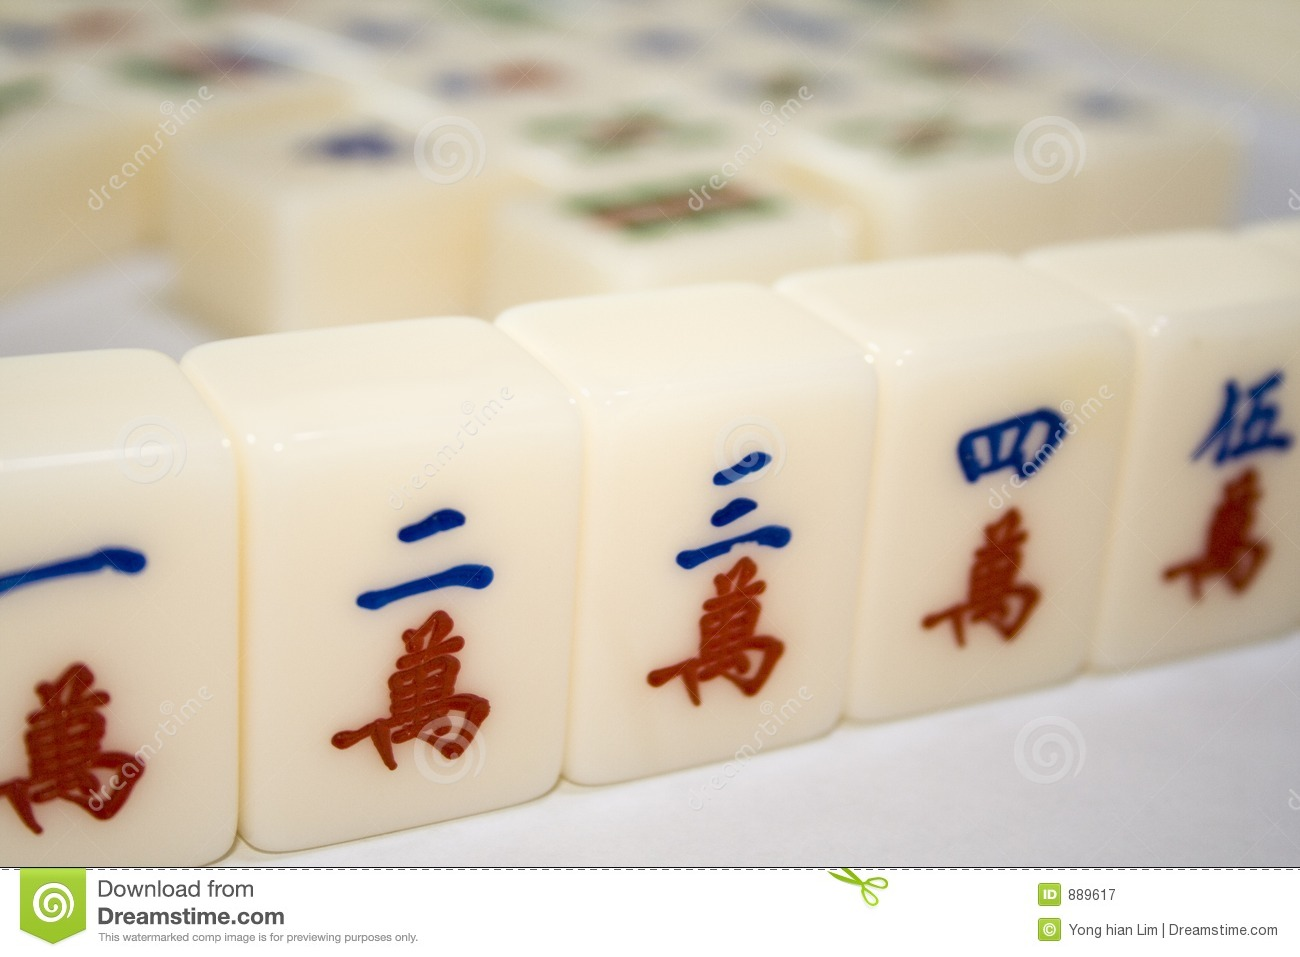 My free mahjong download.